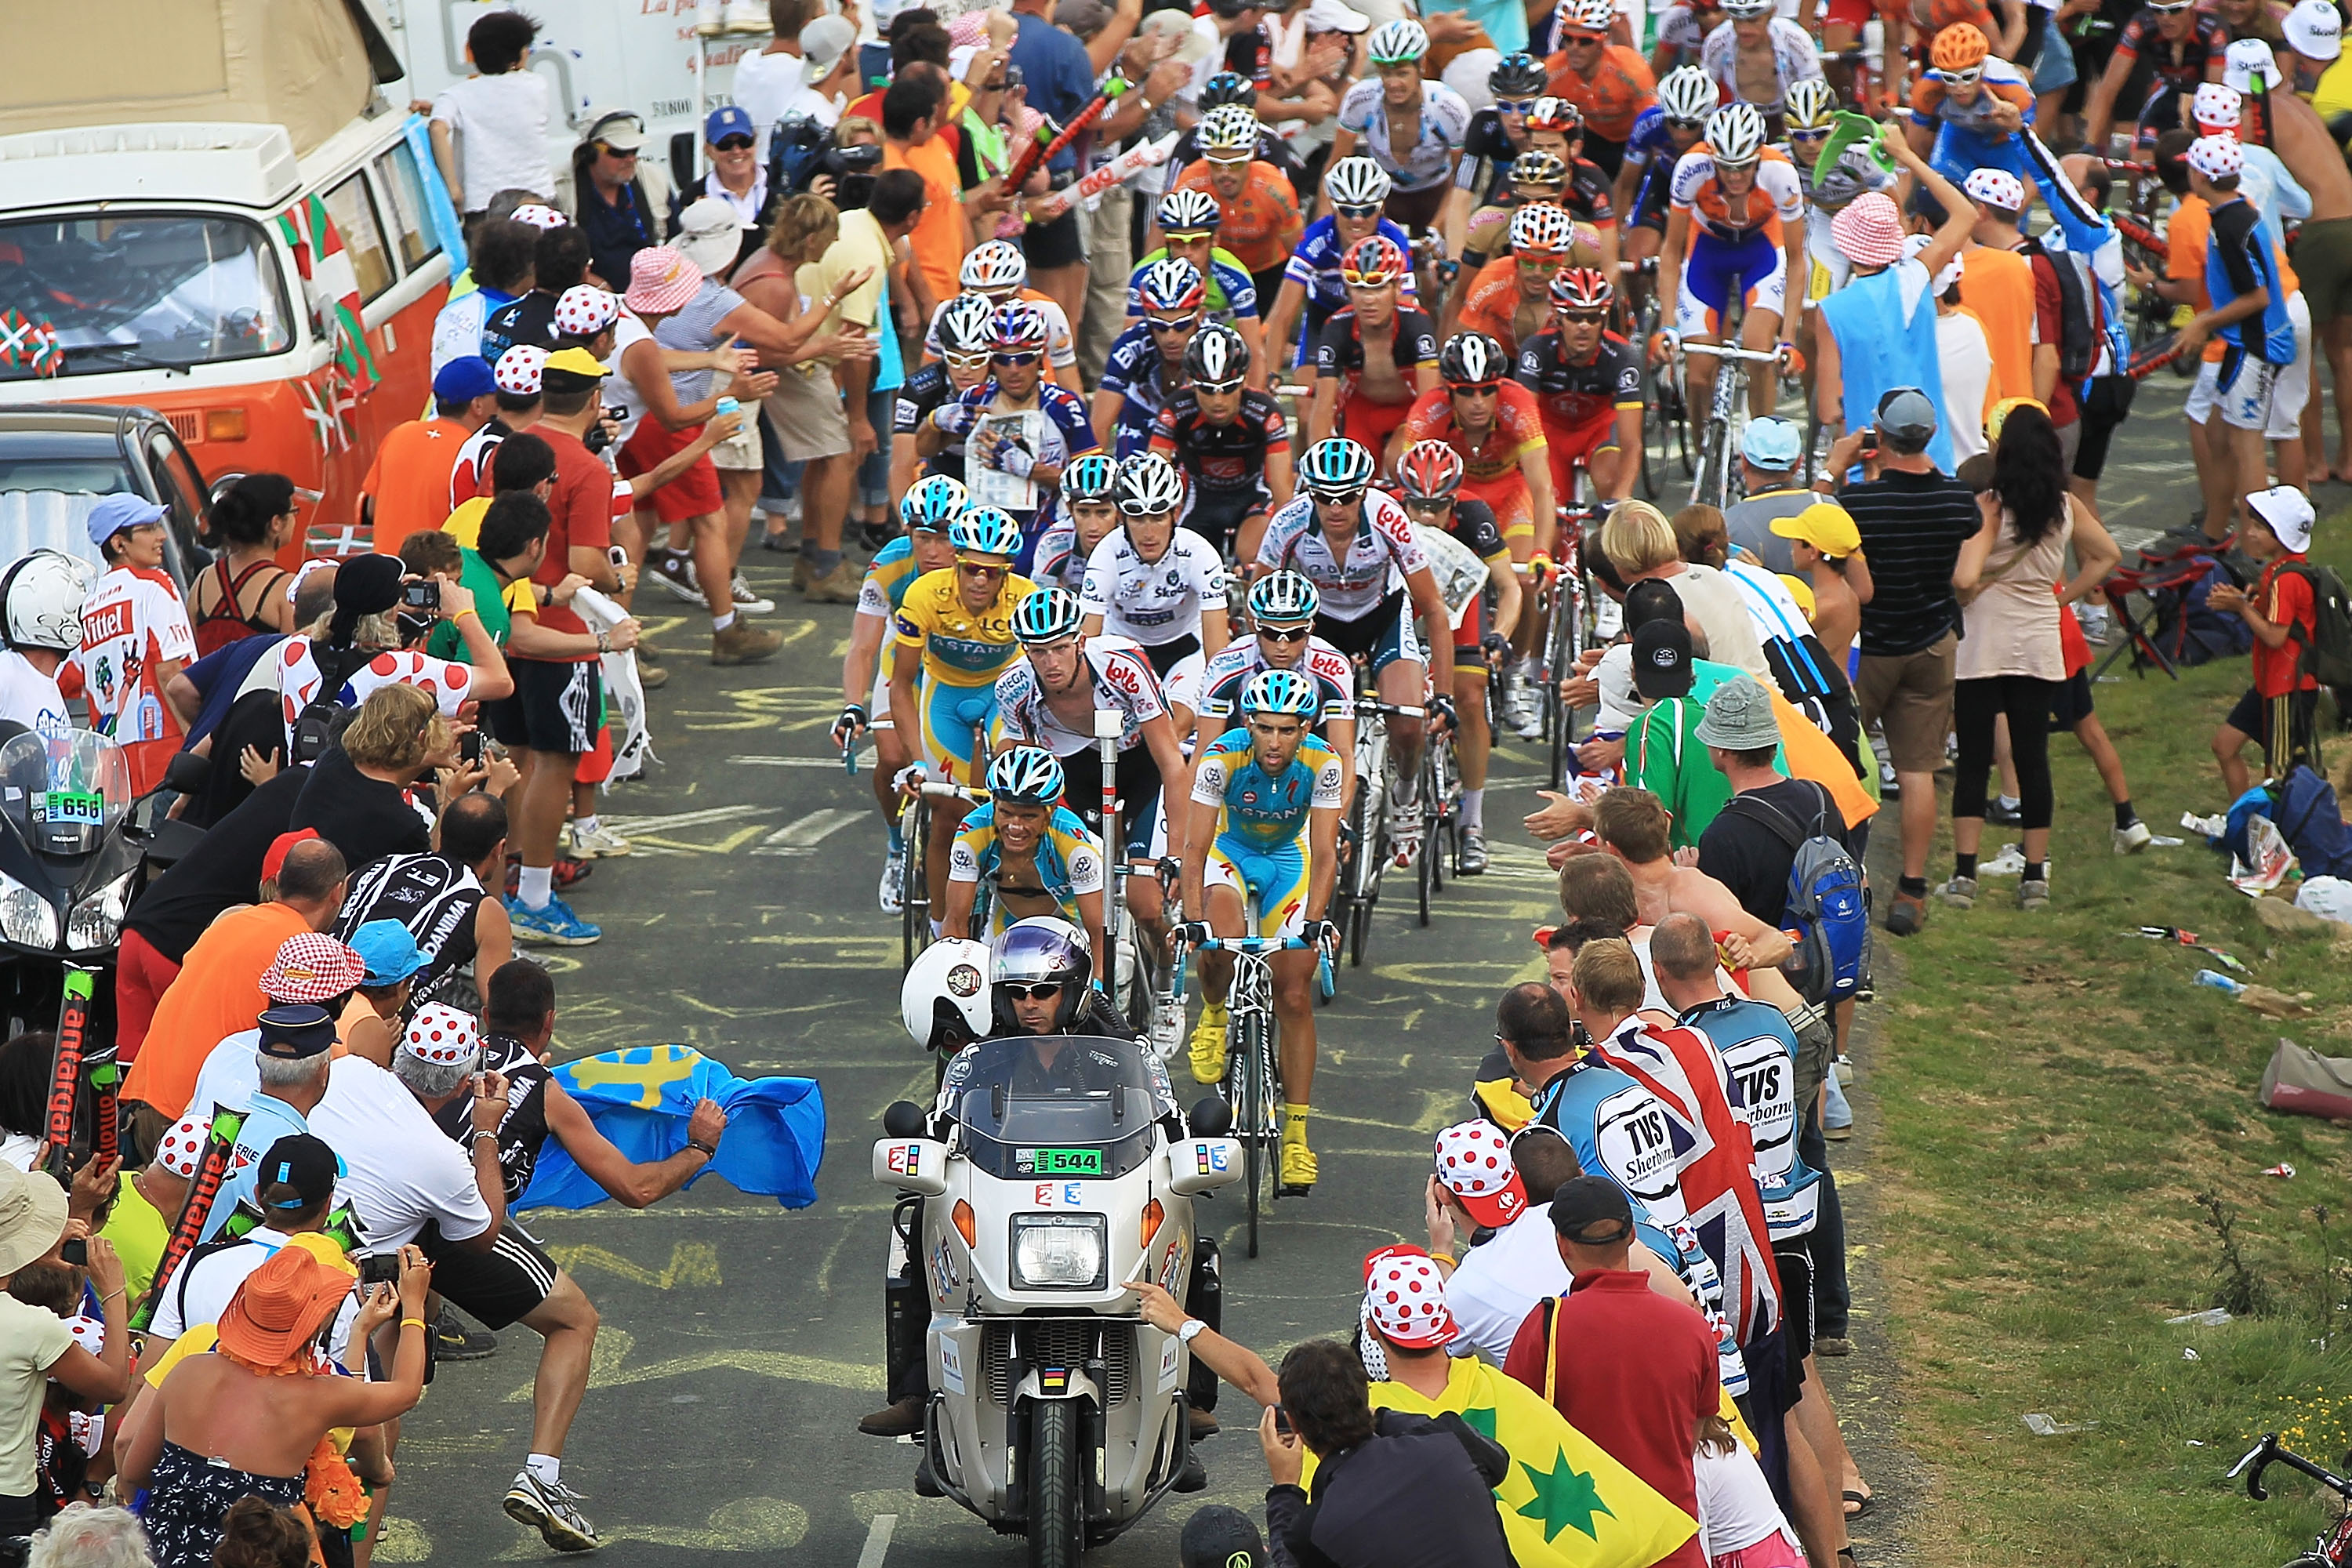 PAU, FRANCE - JULY 20: Thousands cheer on the peloton as they come to the top of the Col du Tourmalet during stage 16 of the Tour de France on July 20, 2010 in Pau, France. The stage, between Bagneres-de-Luchon and Pau, featured four major climbs includin